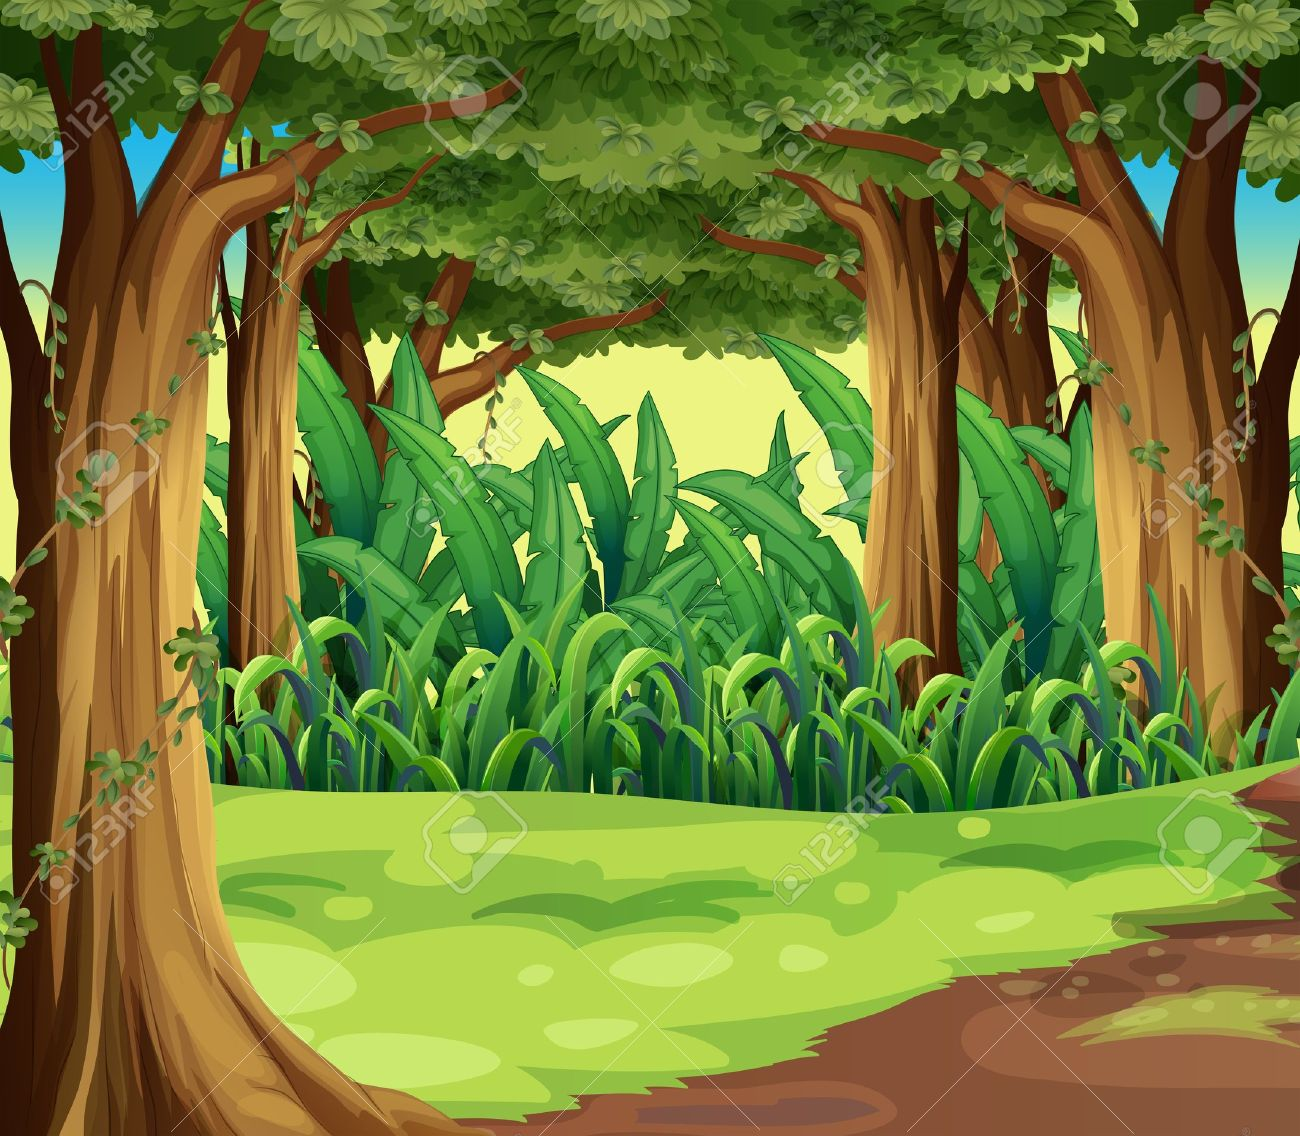 Animated forest clipart vector transparent download Animated forest clipart - Clip Art Library vector transparent download